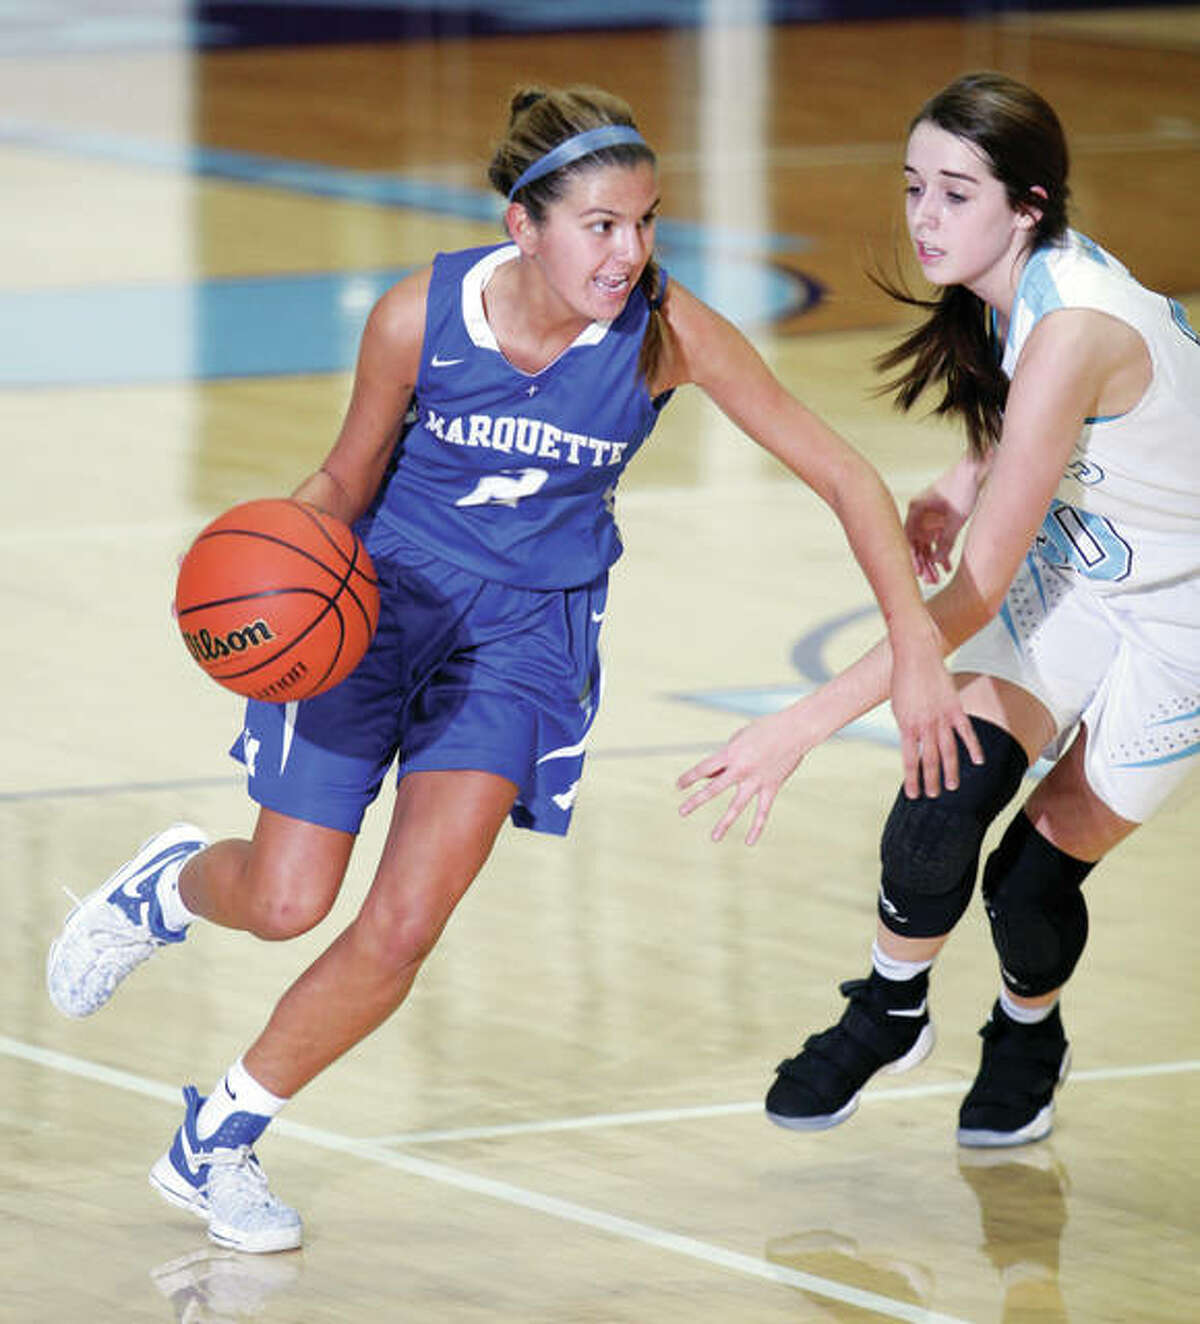 Marquette Catholic's Taylor Aguirre (left) pushes past Jersey's Abby Manns during an Explorers victory Dec. 6 game at Havens Gym in Jerseyville. The Explorers saw their winning streak ended at 10 in a row Saturday with a loss to Columbia at the Waterloo Gibault Tourney.